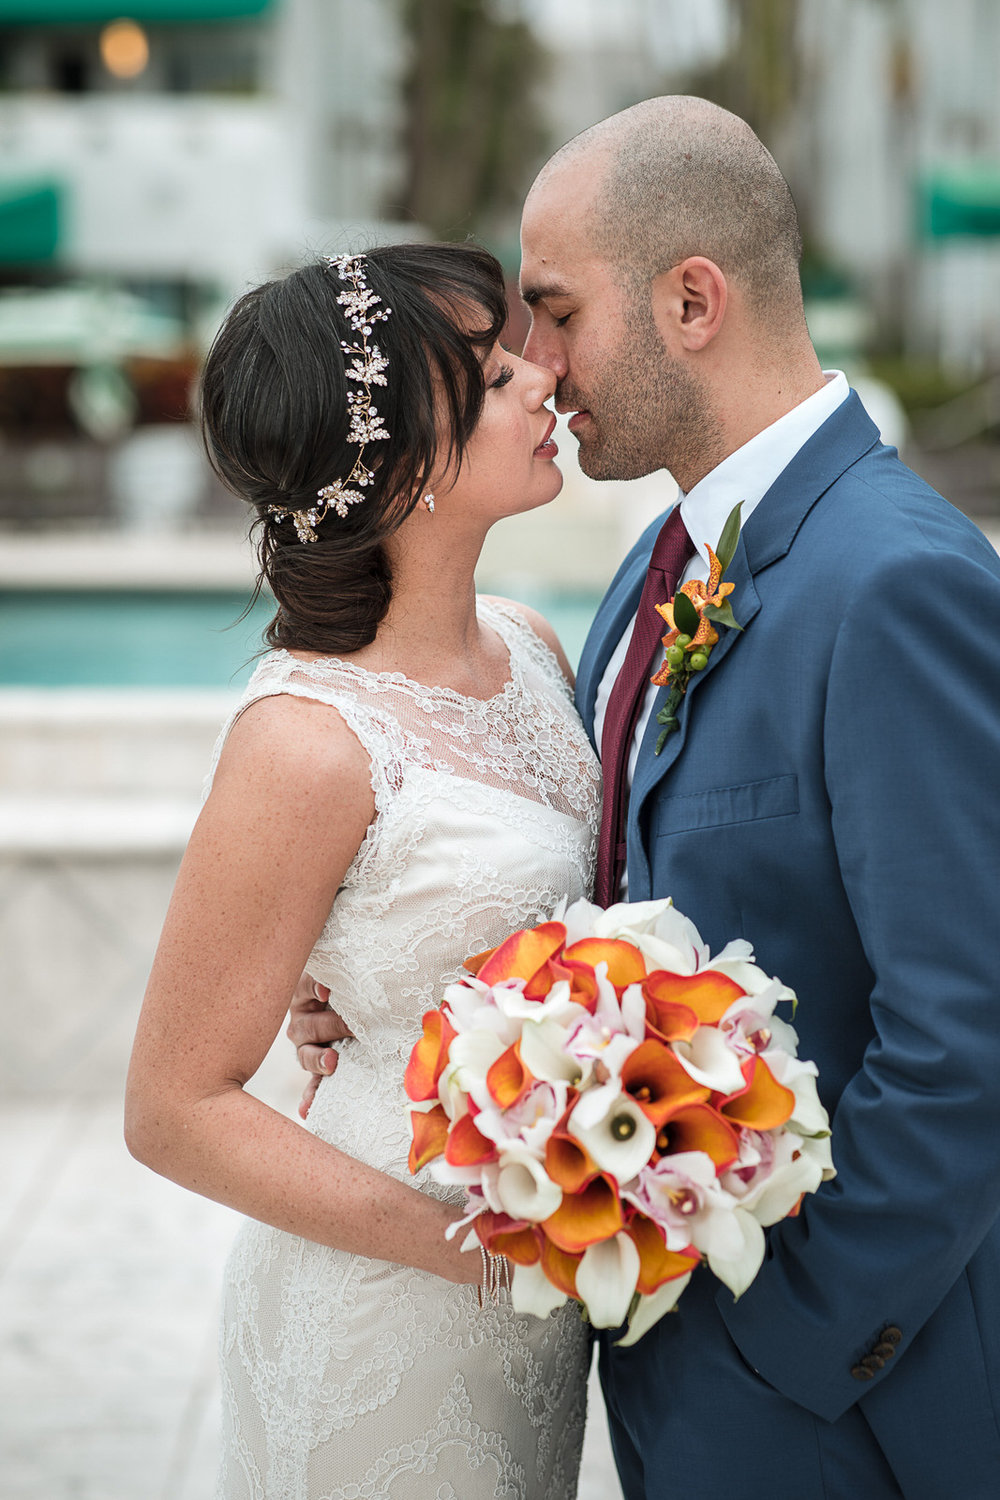 VIEW MORE - MARIAND & NICHOLAS | WEDDING AT THE KIMPTON SURFCOMBER, MIAMI FLORIDA